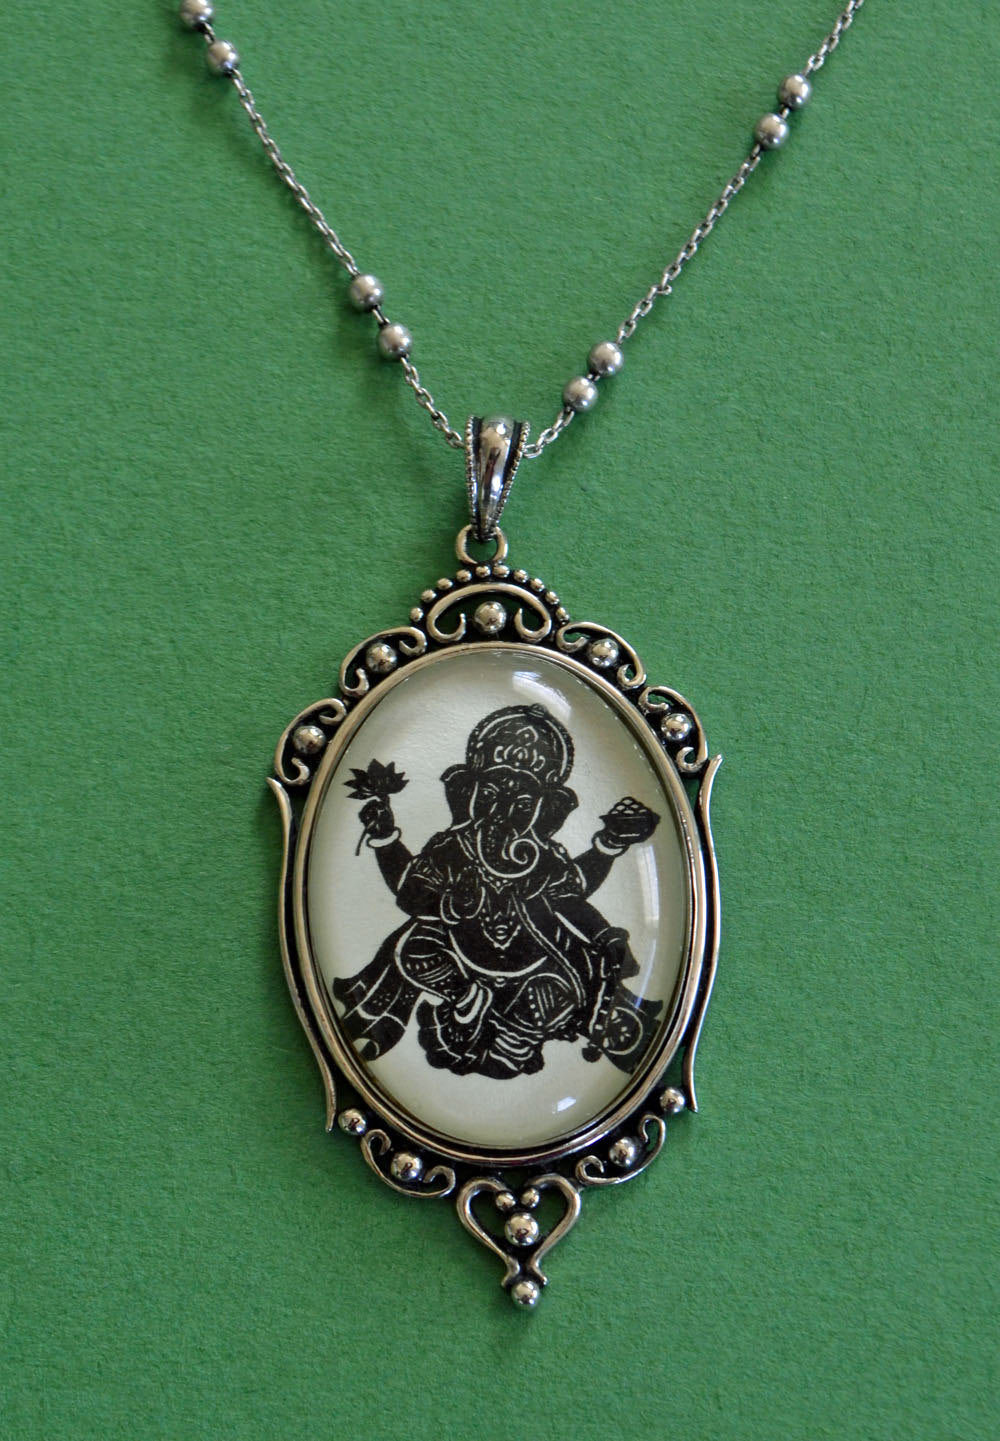 GANESH Necklace, pendant on chain - Silhouette Jewelry